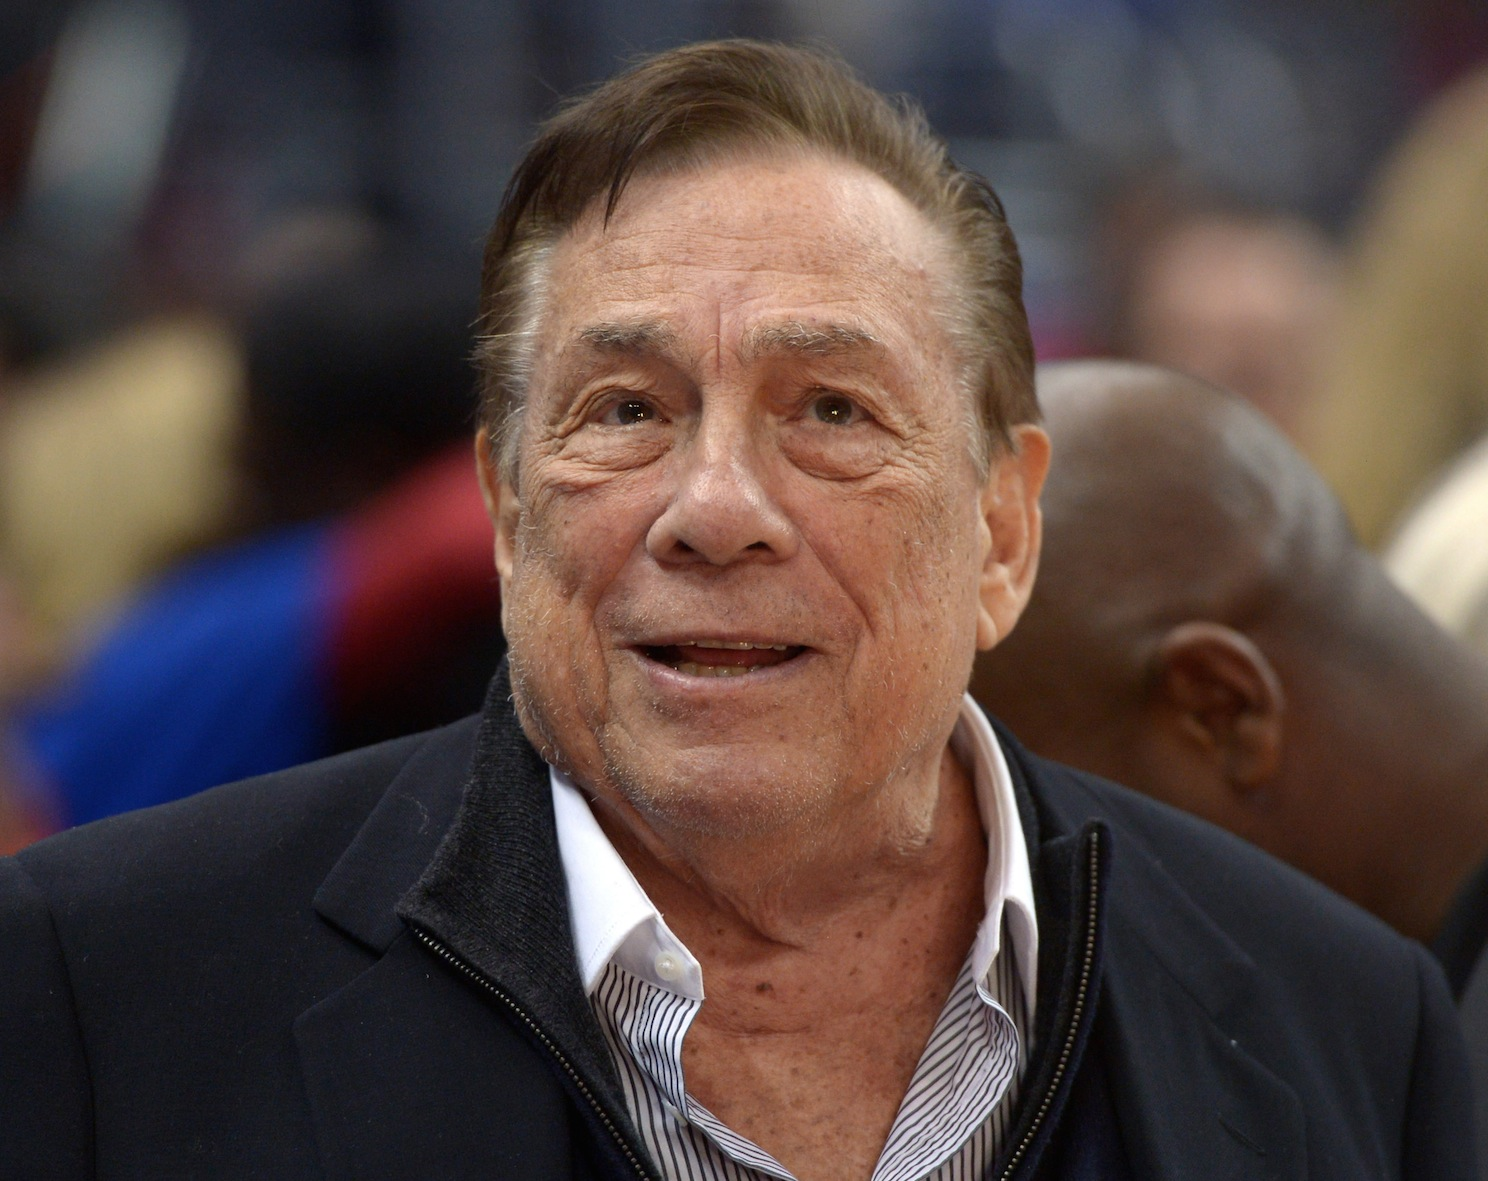 Donald Sterling saga from a legal standpoint